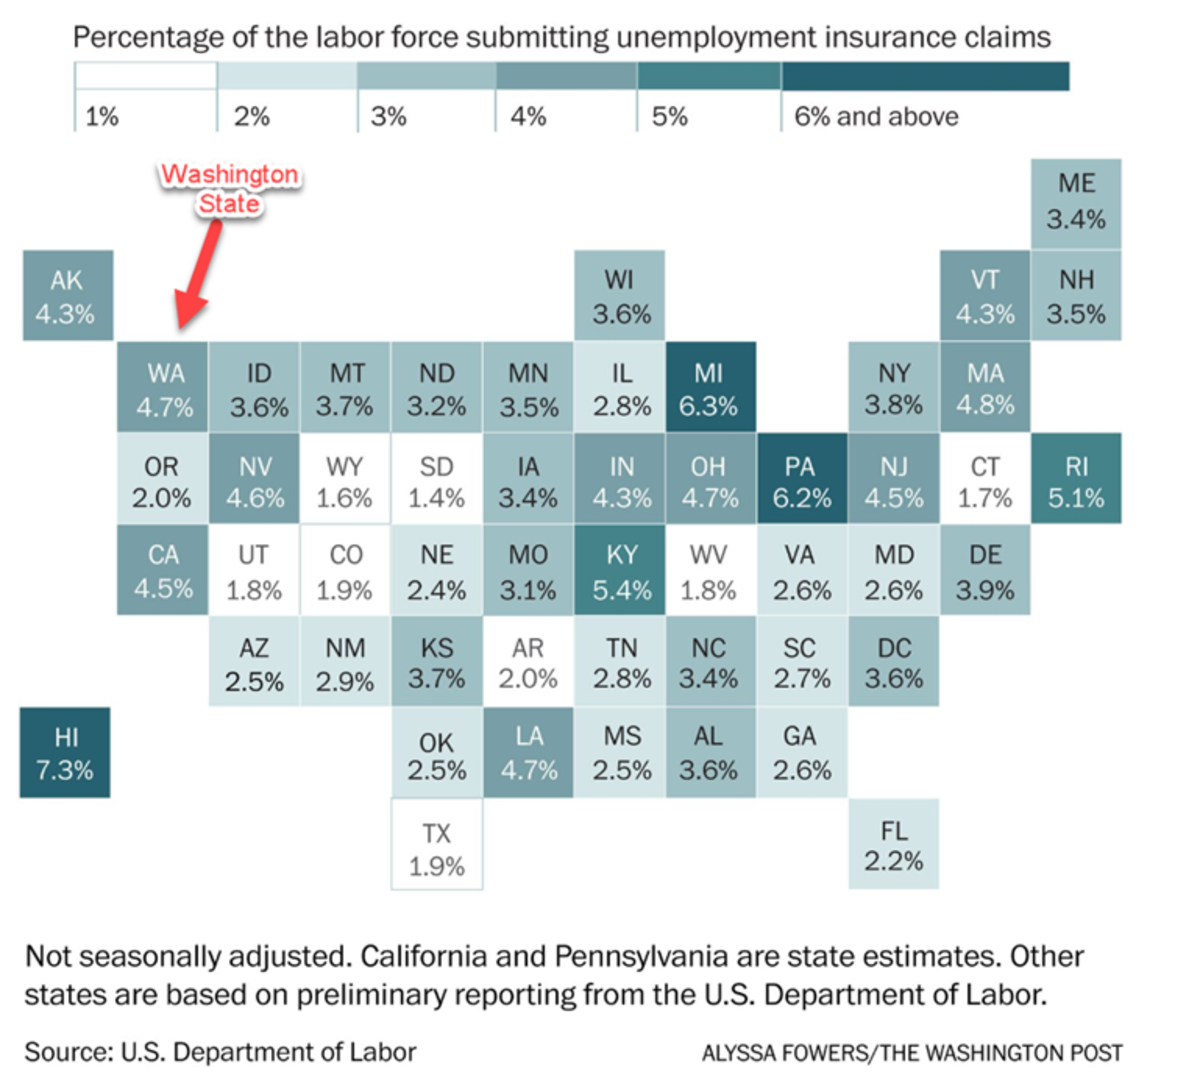 U.S. unemployment insurance claims as a percentage of labor force